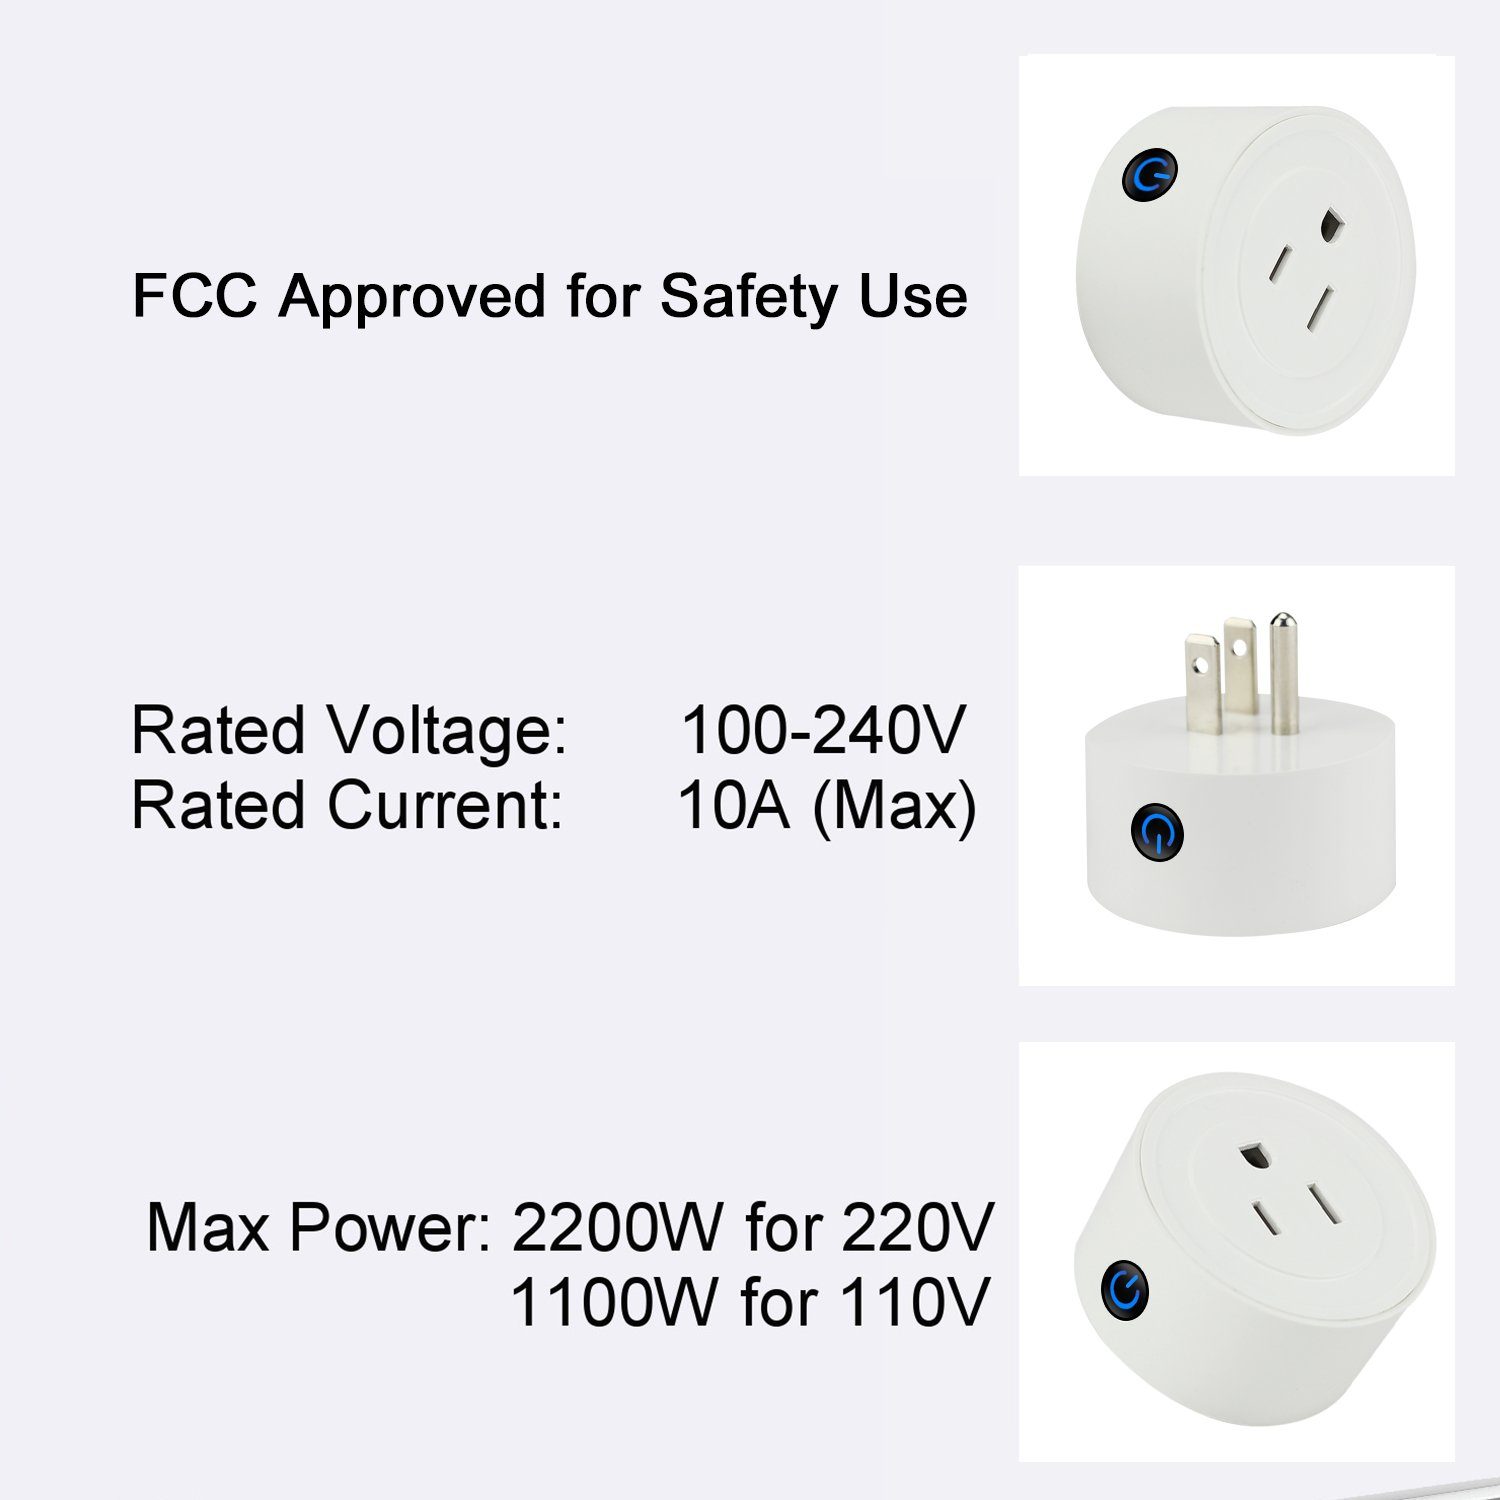 Martin Jerry mini Smart Plug Compatible with Alexa, Smart Home Devices Works with Google Home, No Hub required, Easy installation and App control Smart Switch On / Off / Timing (Model: V01) (2 Pack) by Martin Jerry (Image #6)